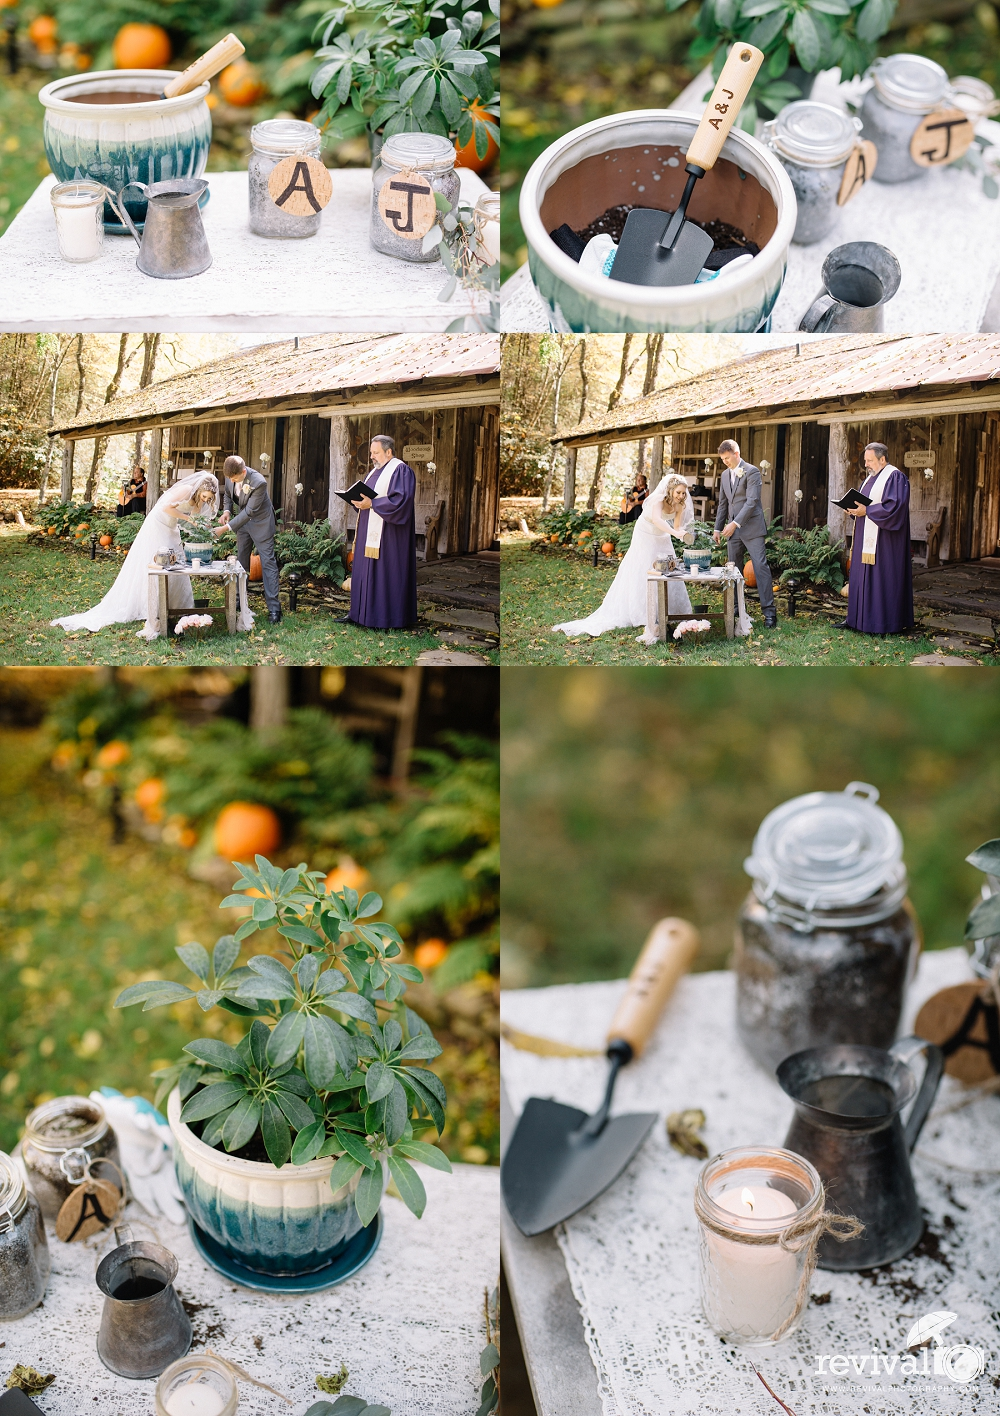 Ashley + Jesse: An Intimate Fall Wedding Celebration at The Mast Farm Inn by Revival Photography NC Wedding Photographers www.revivalphotography.com